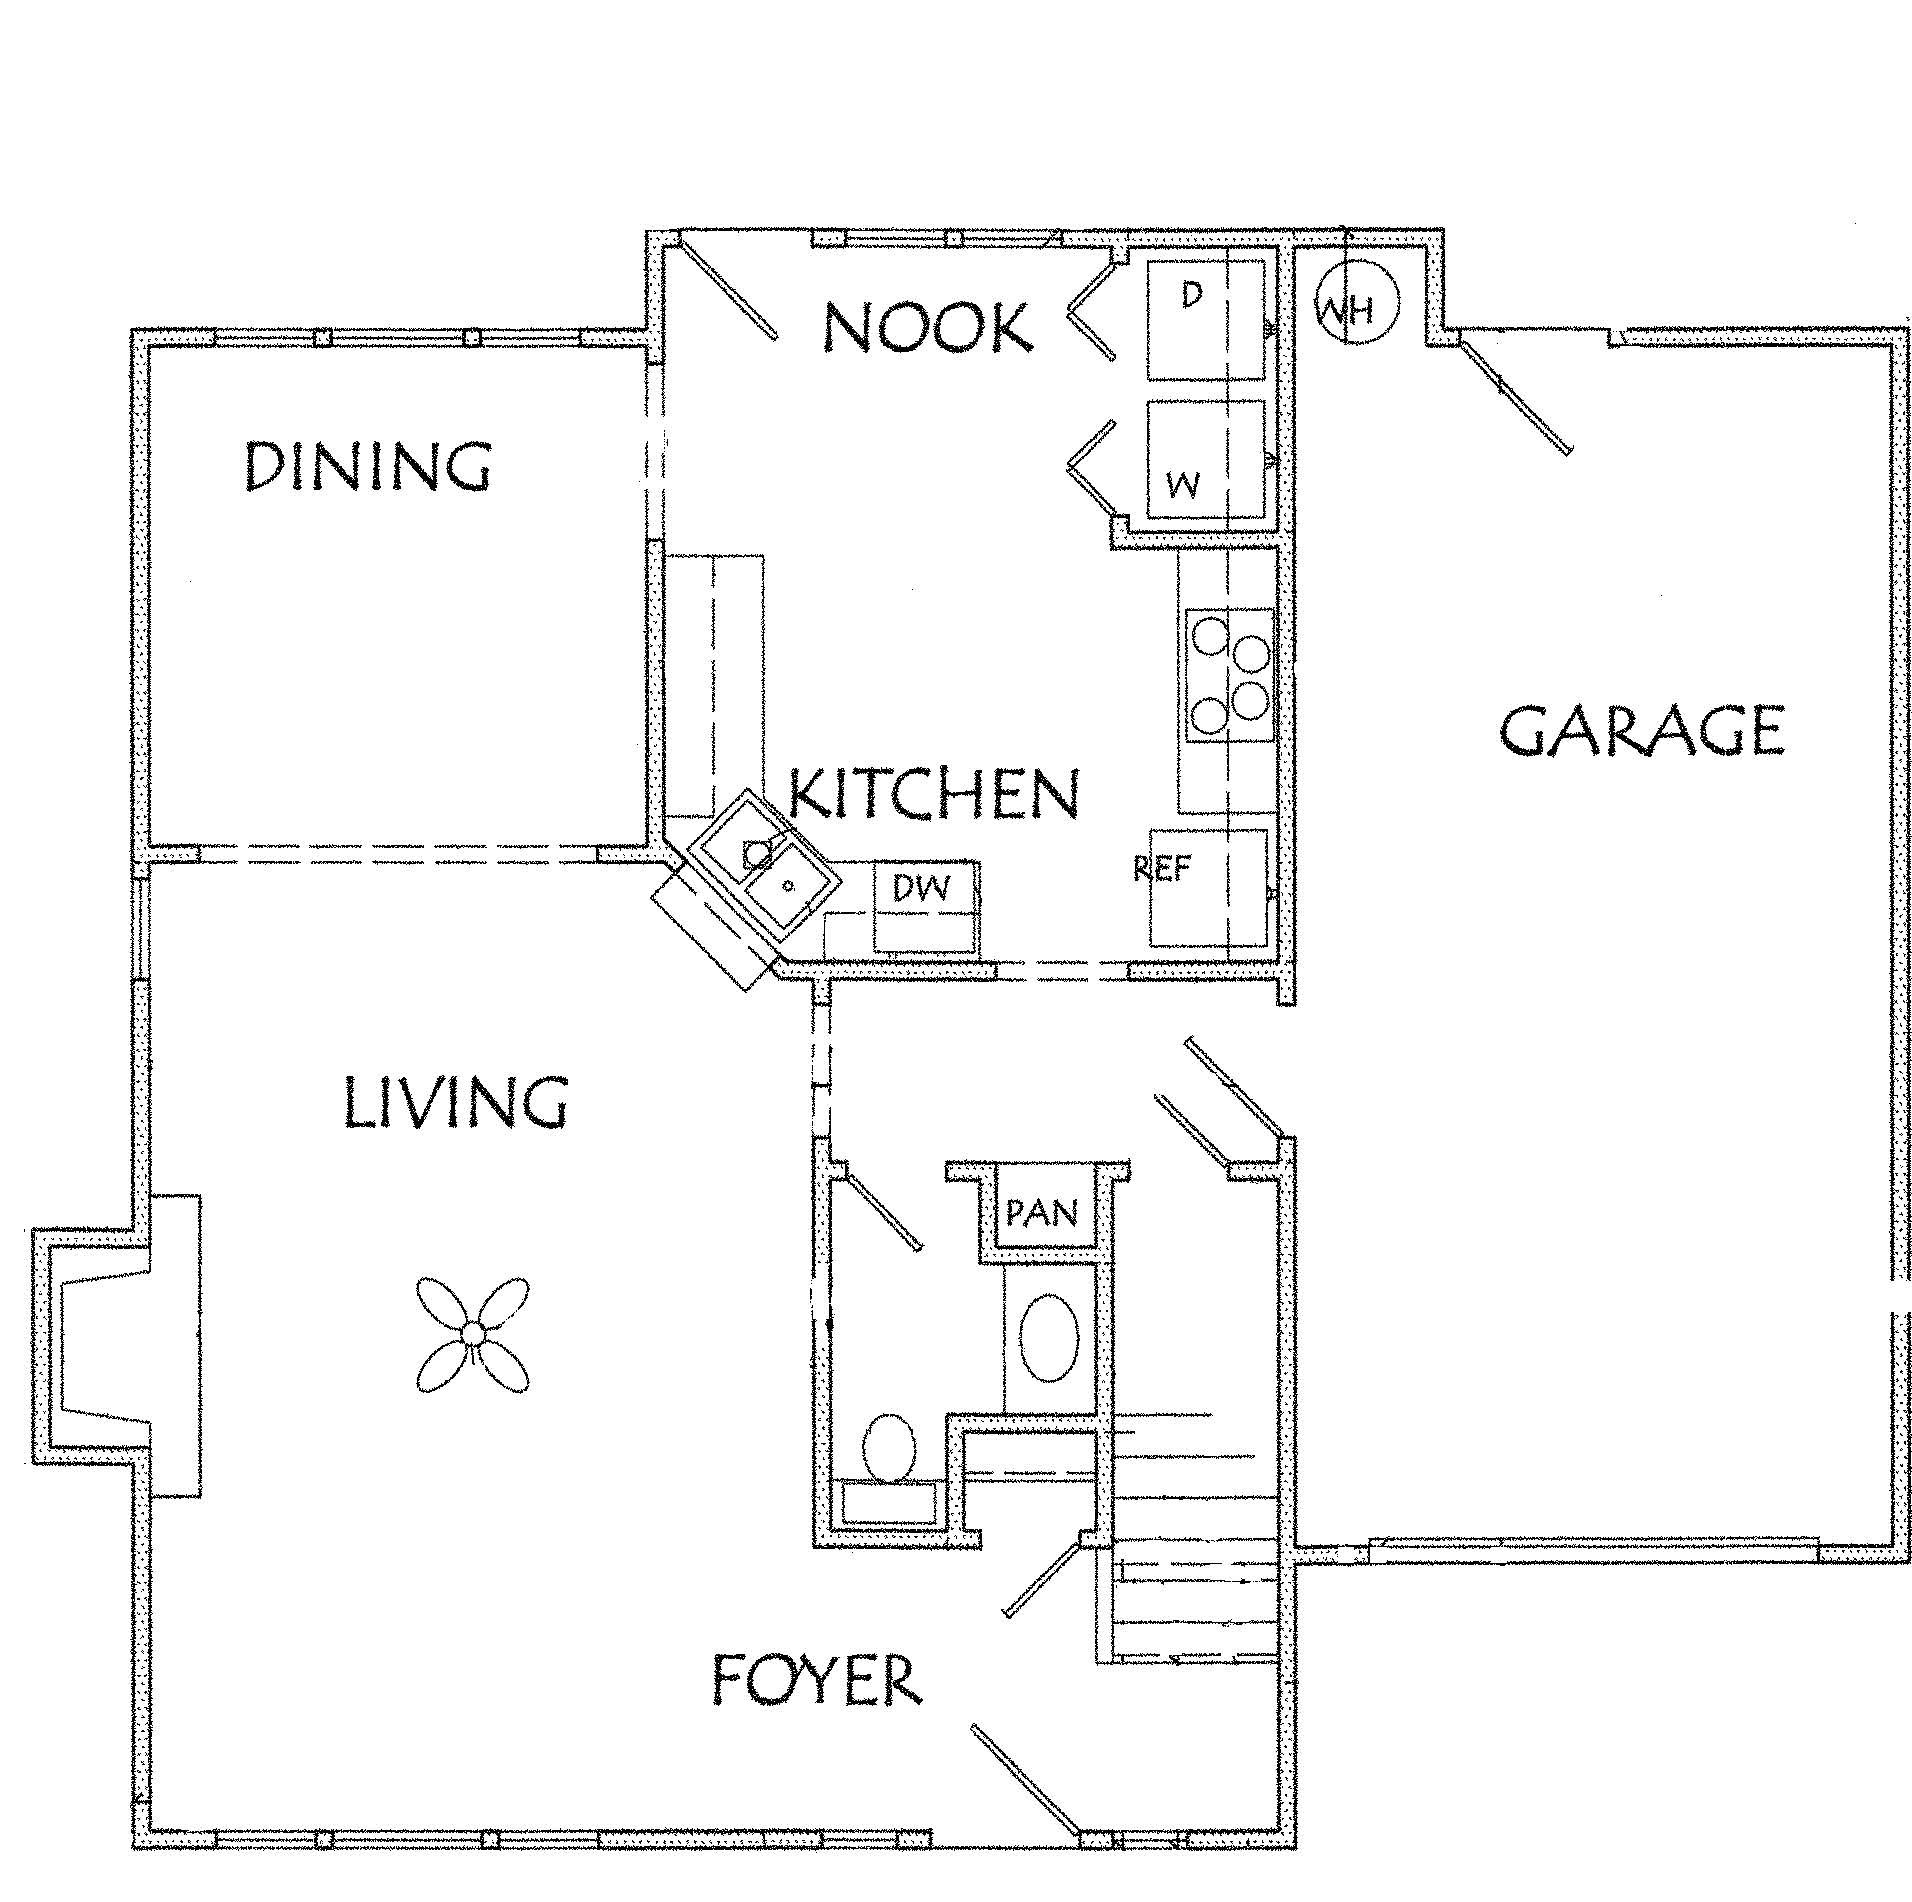 3 Bedroom 2 5 Bath 1 Car Garage Sf